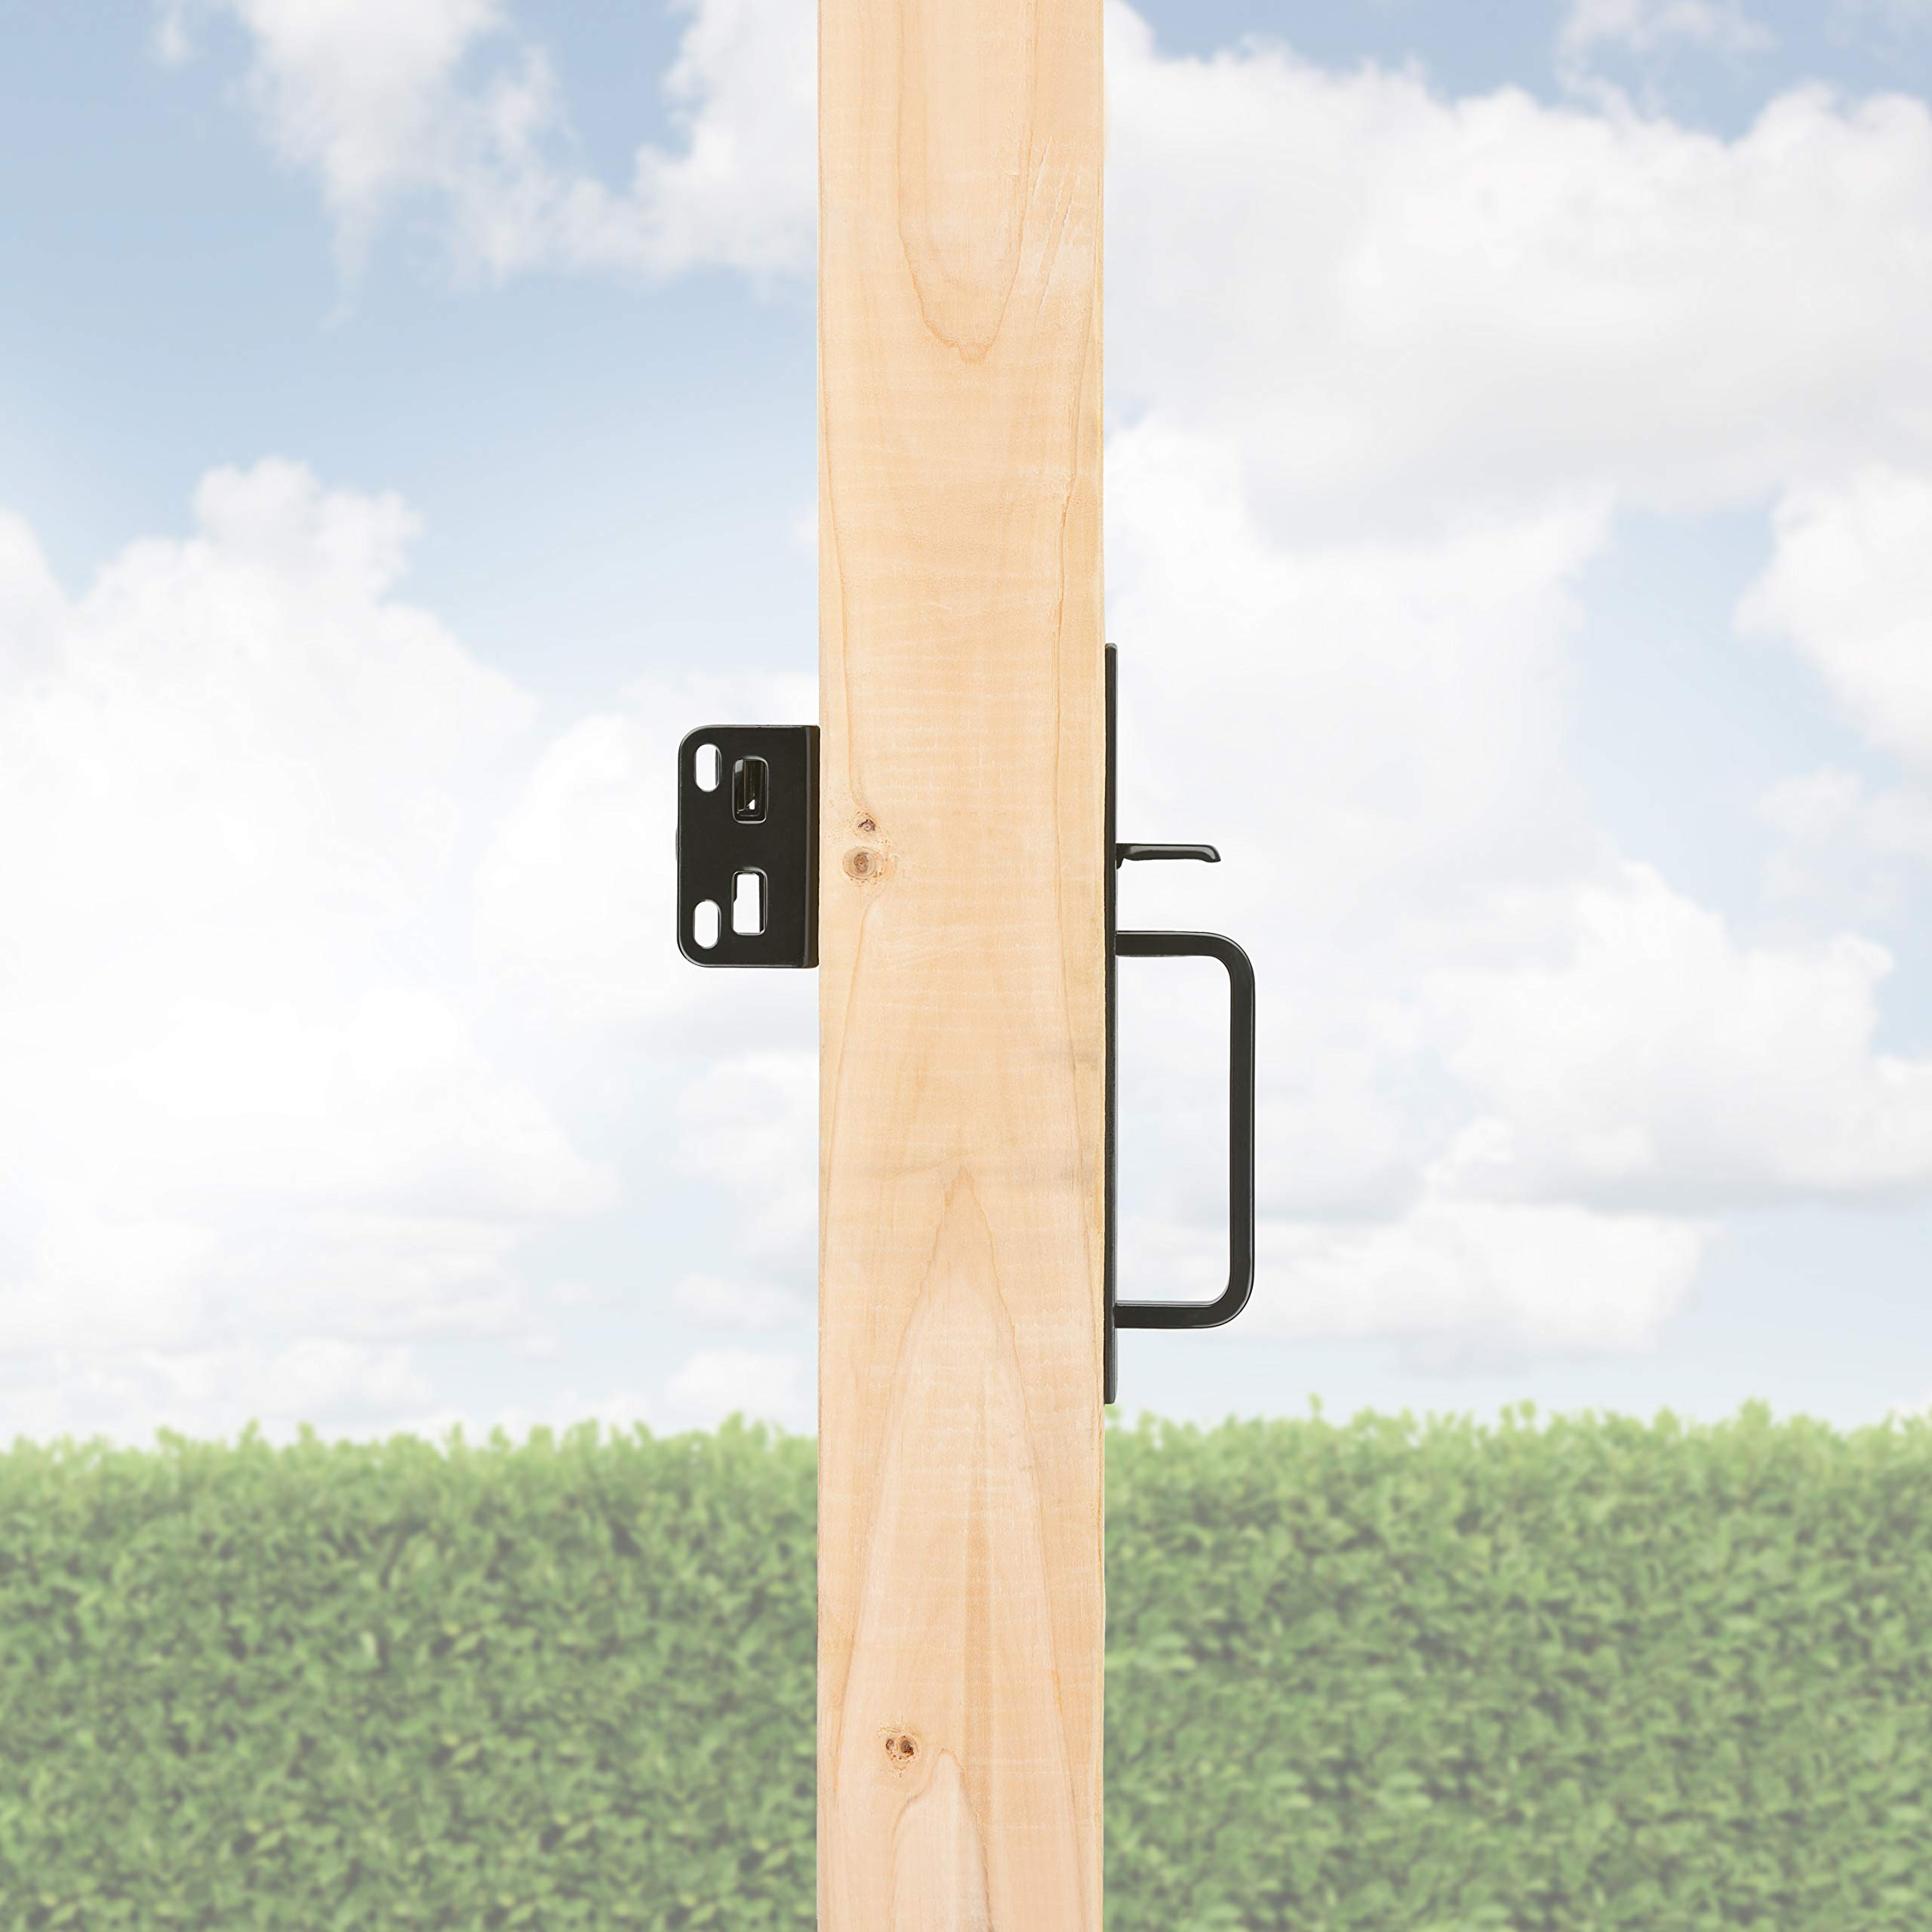 Gate Thumb Latch N109-050 by National Hardware in Black by National Hardware (Image #7)